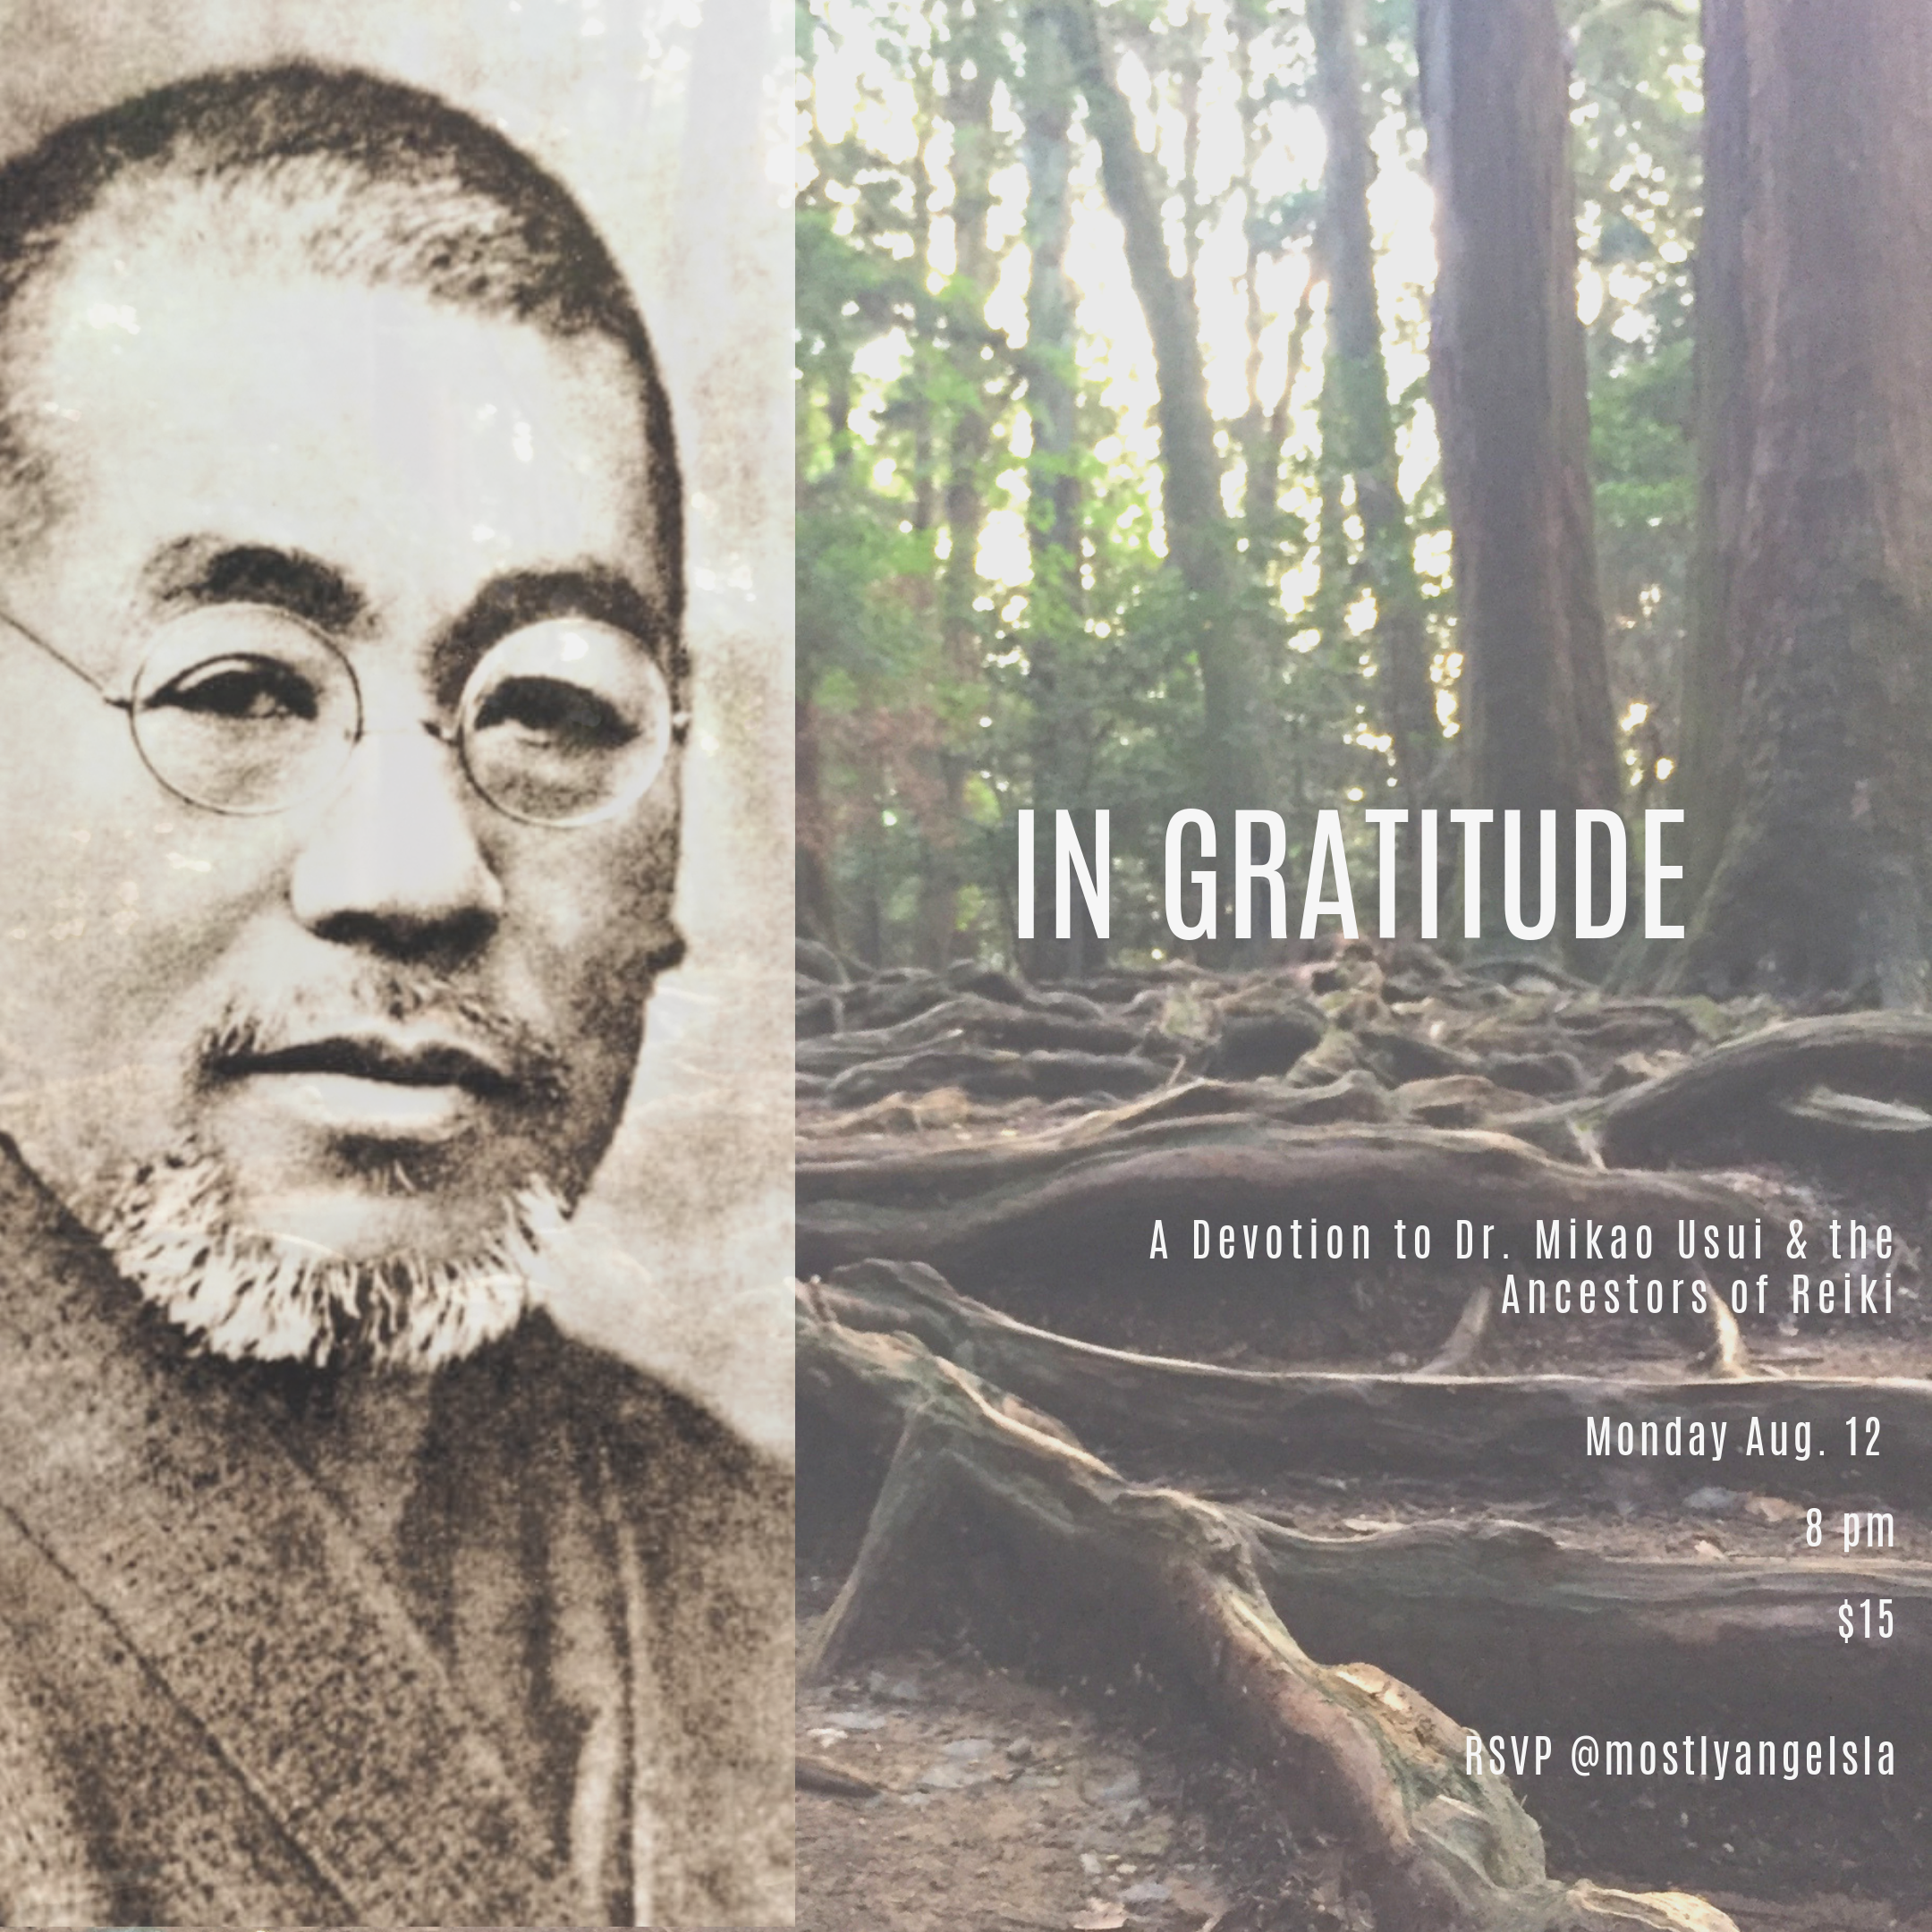 IN GRATITUDE A devotion to Dr. Mikao Usui & the Ancestors of Reiki  Monday Aug. 12  8 pm $15 Rsvp @mostlyangelsla - Trudy Panalal.png